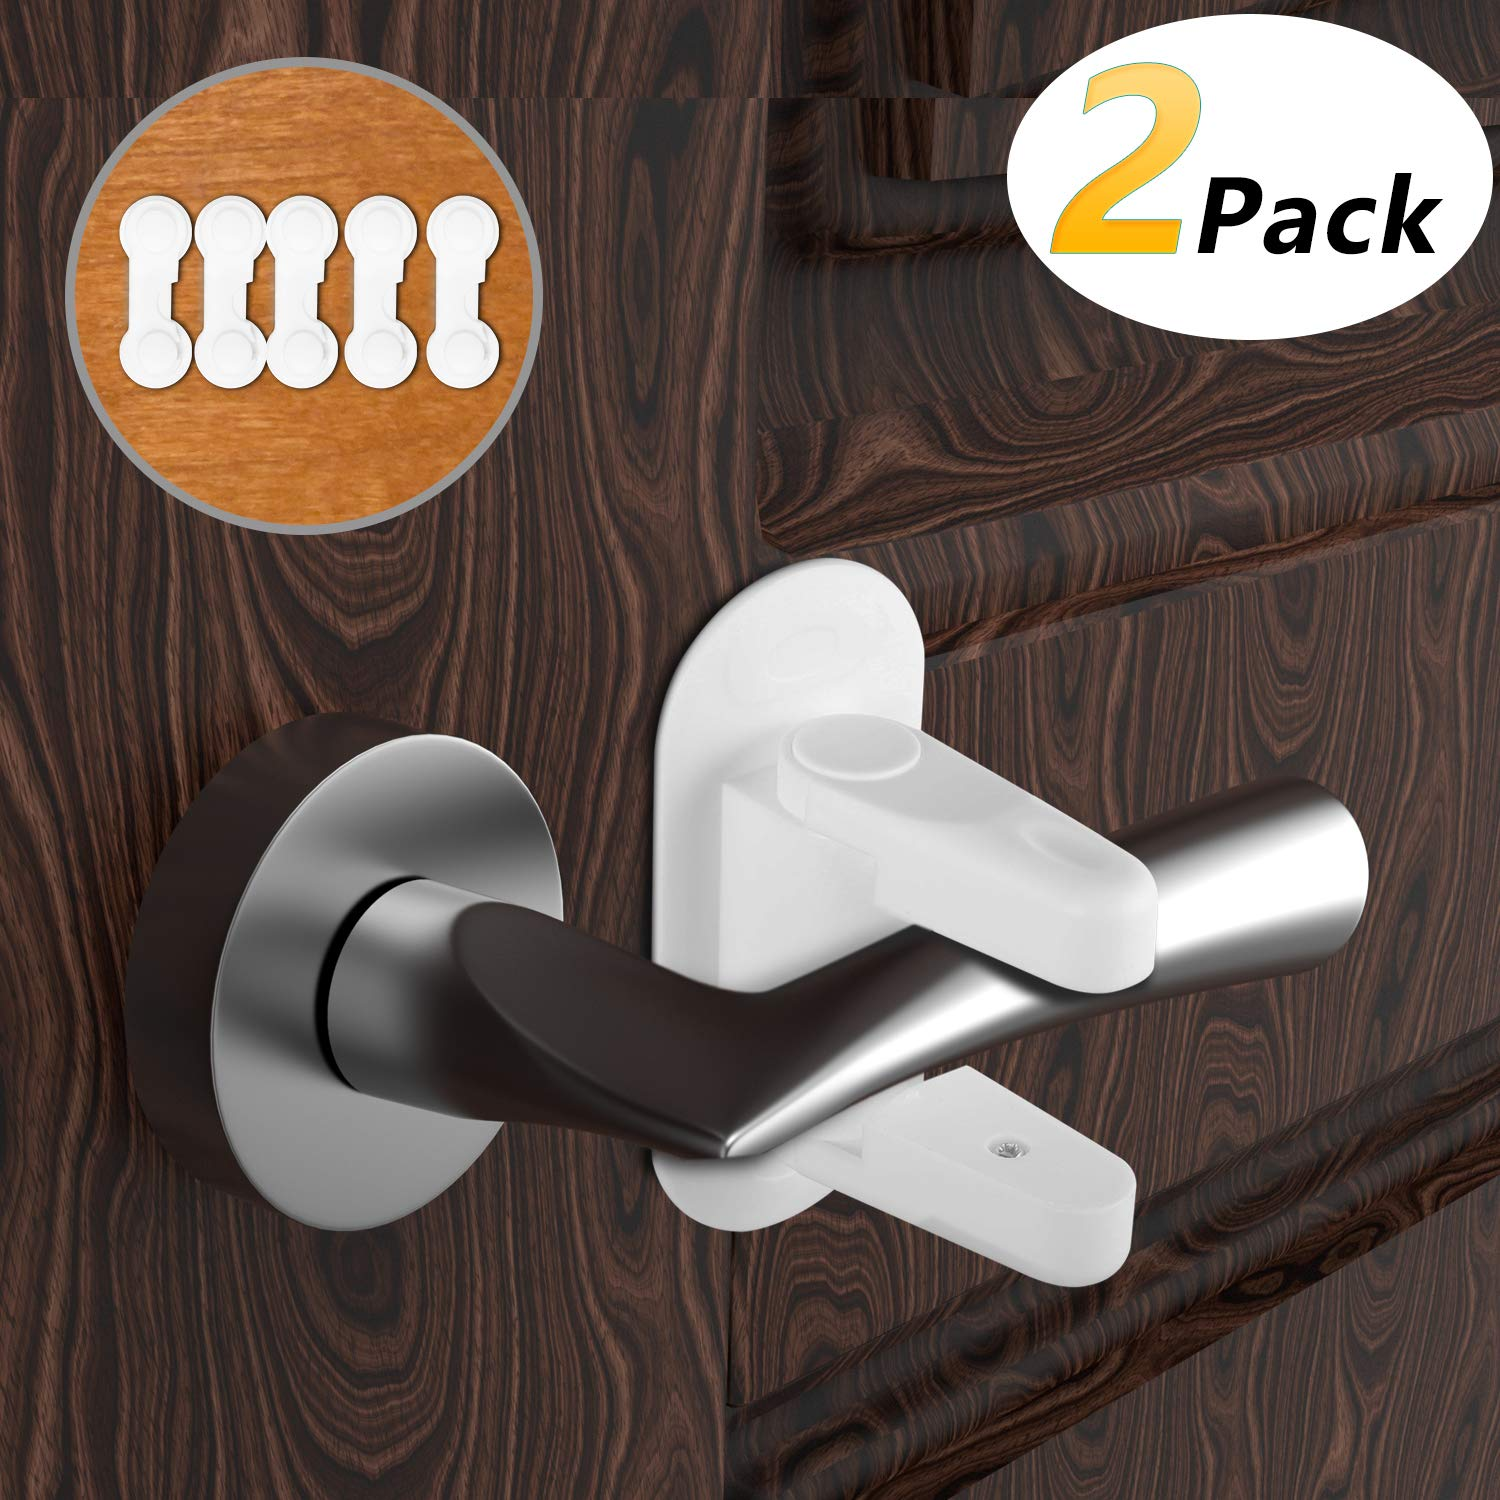 4 Pack Gifts Baby Safety Lock Door Handle Child Proof Locks with 3M Strong Adhesive,Cabinet Safety Lock with 5 Pack Child Locks for Kitchen Cupboards White